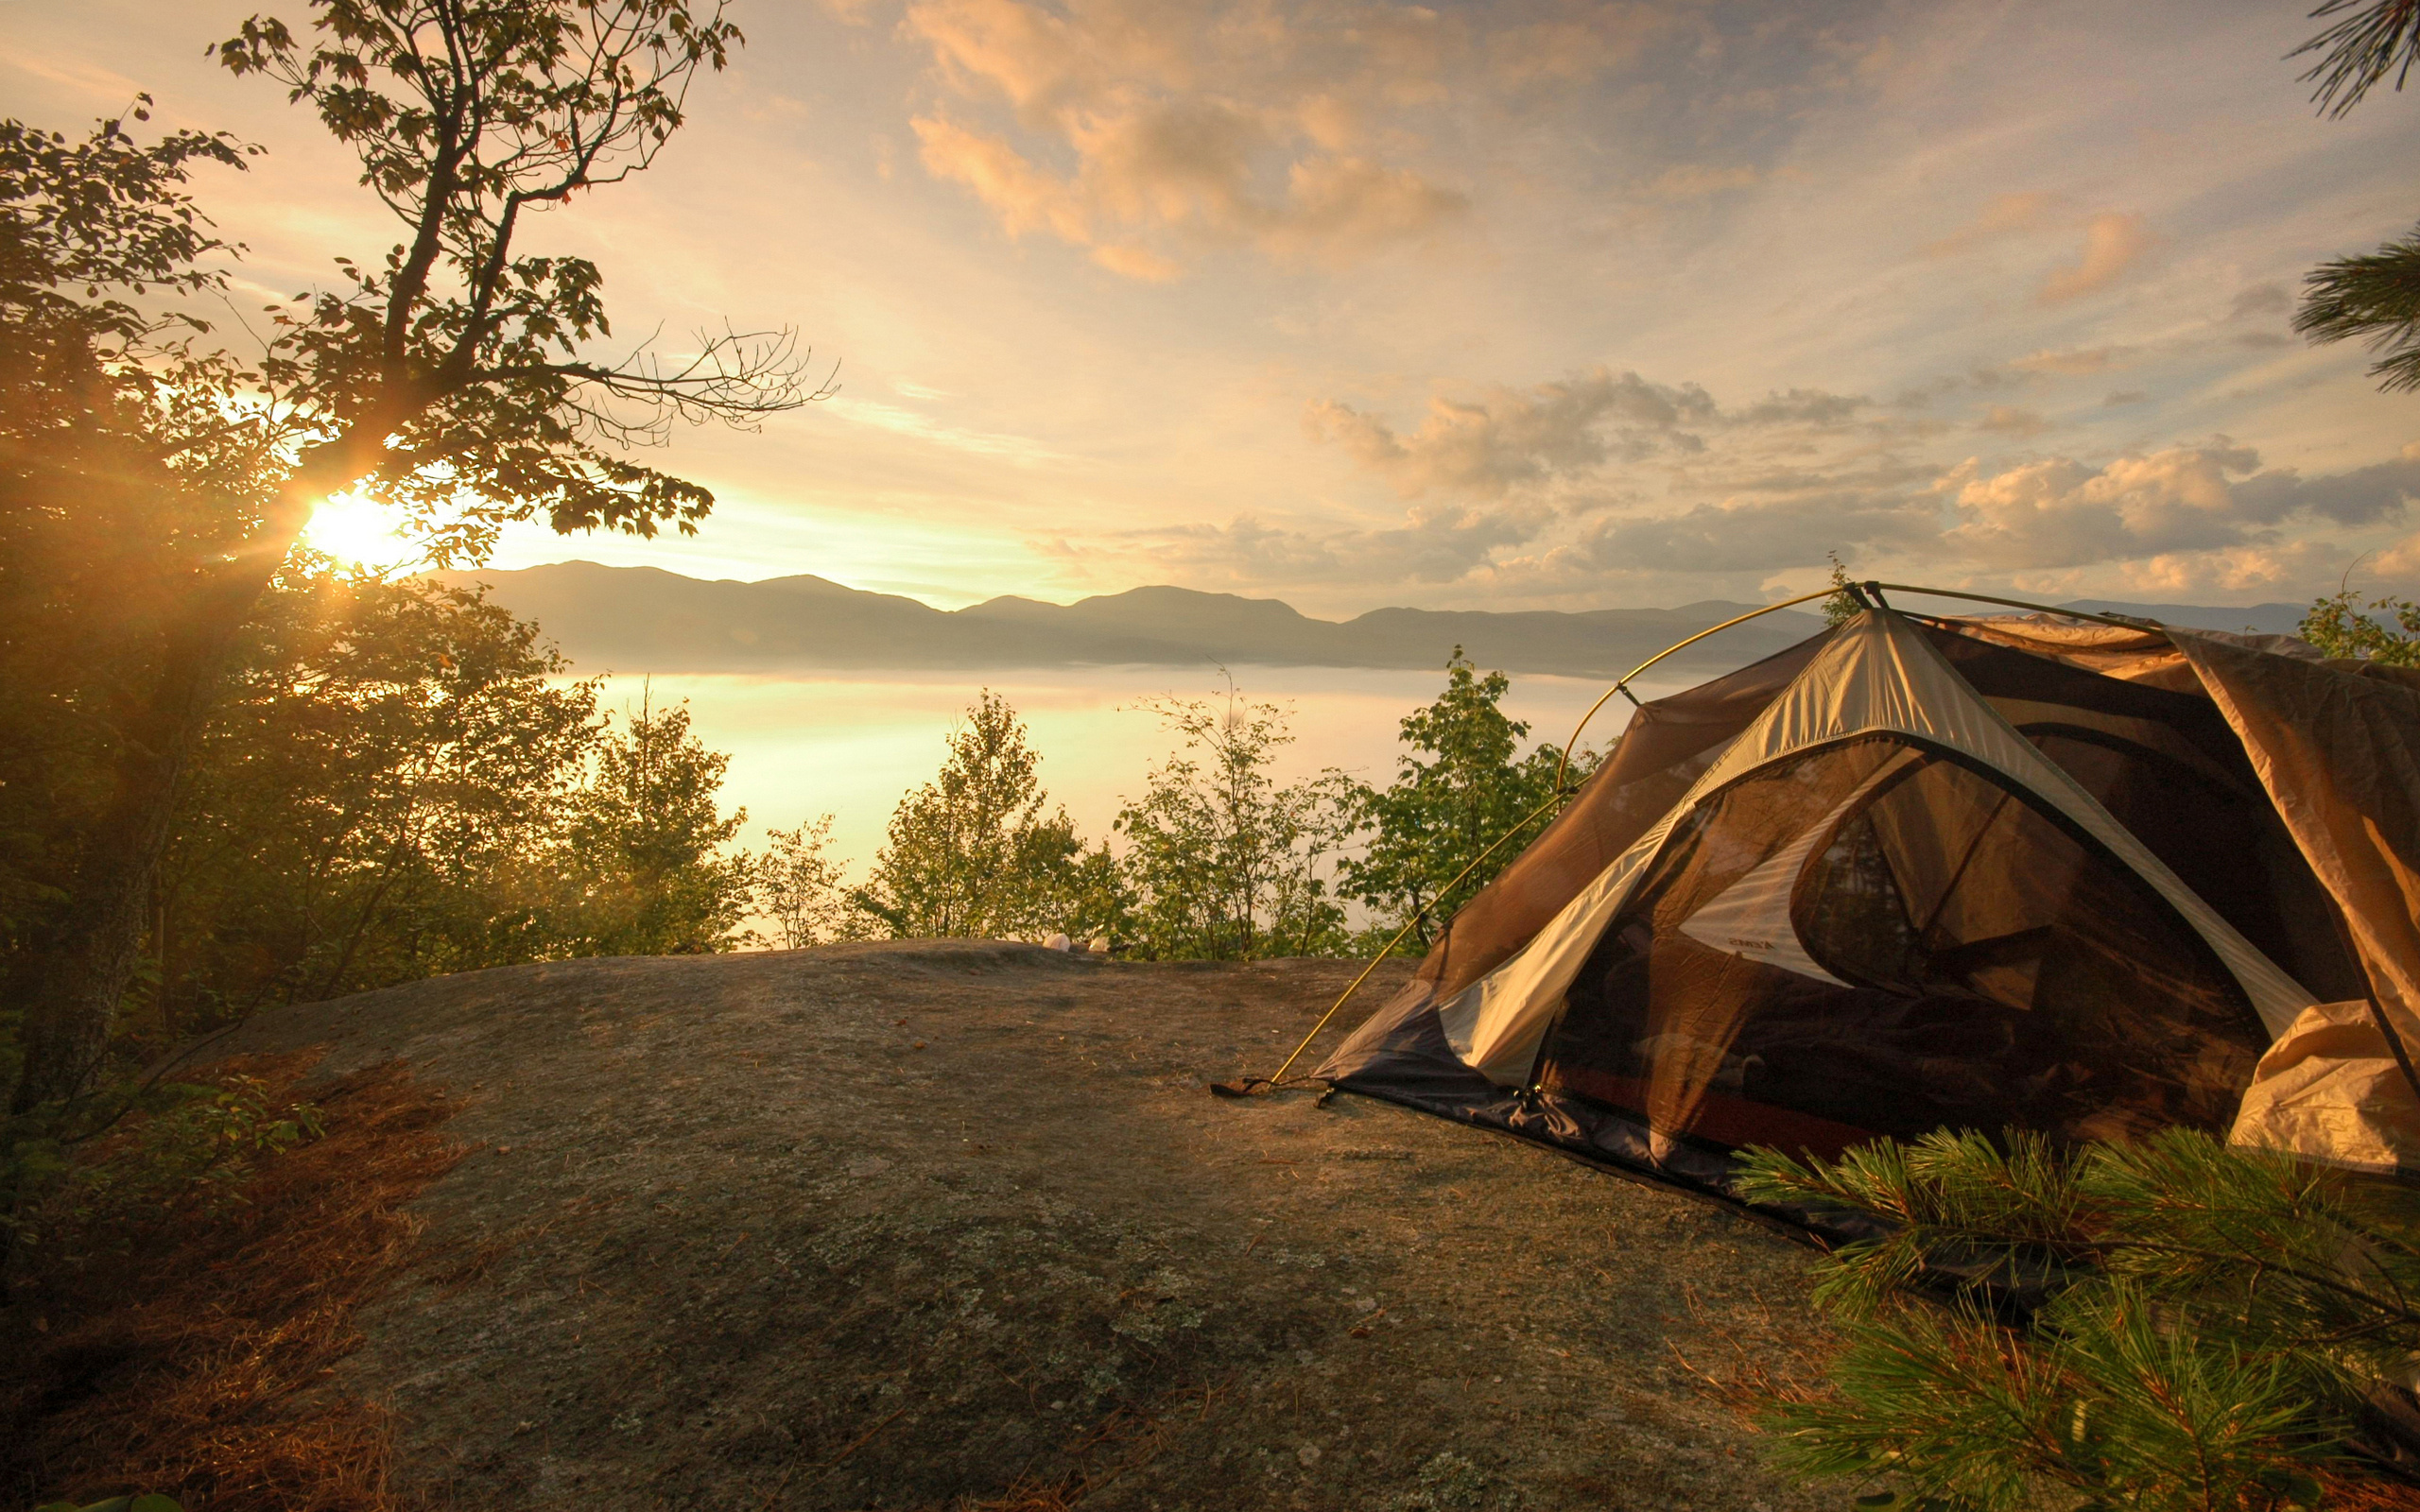 Camping Near The Lake Background Wallpaperjpg 2560x1600